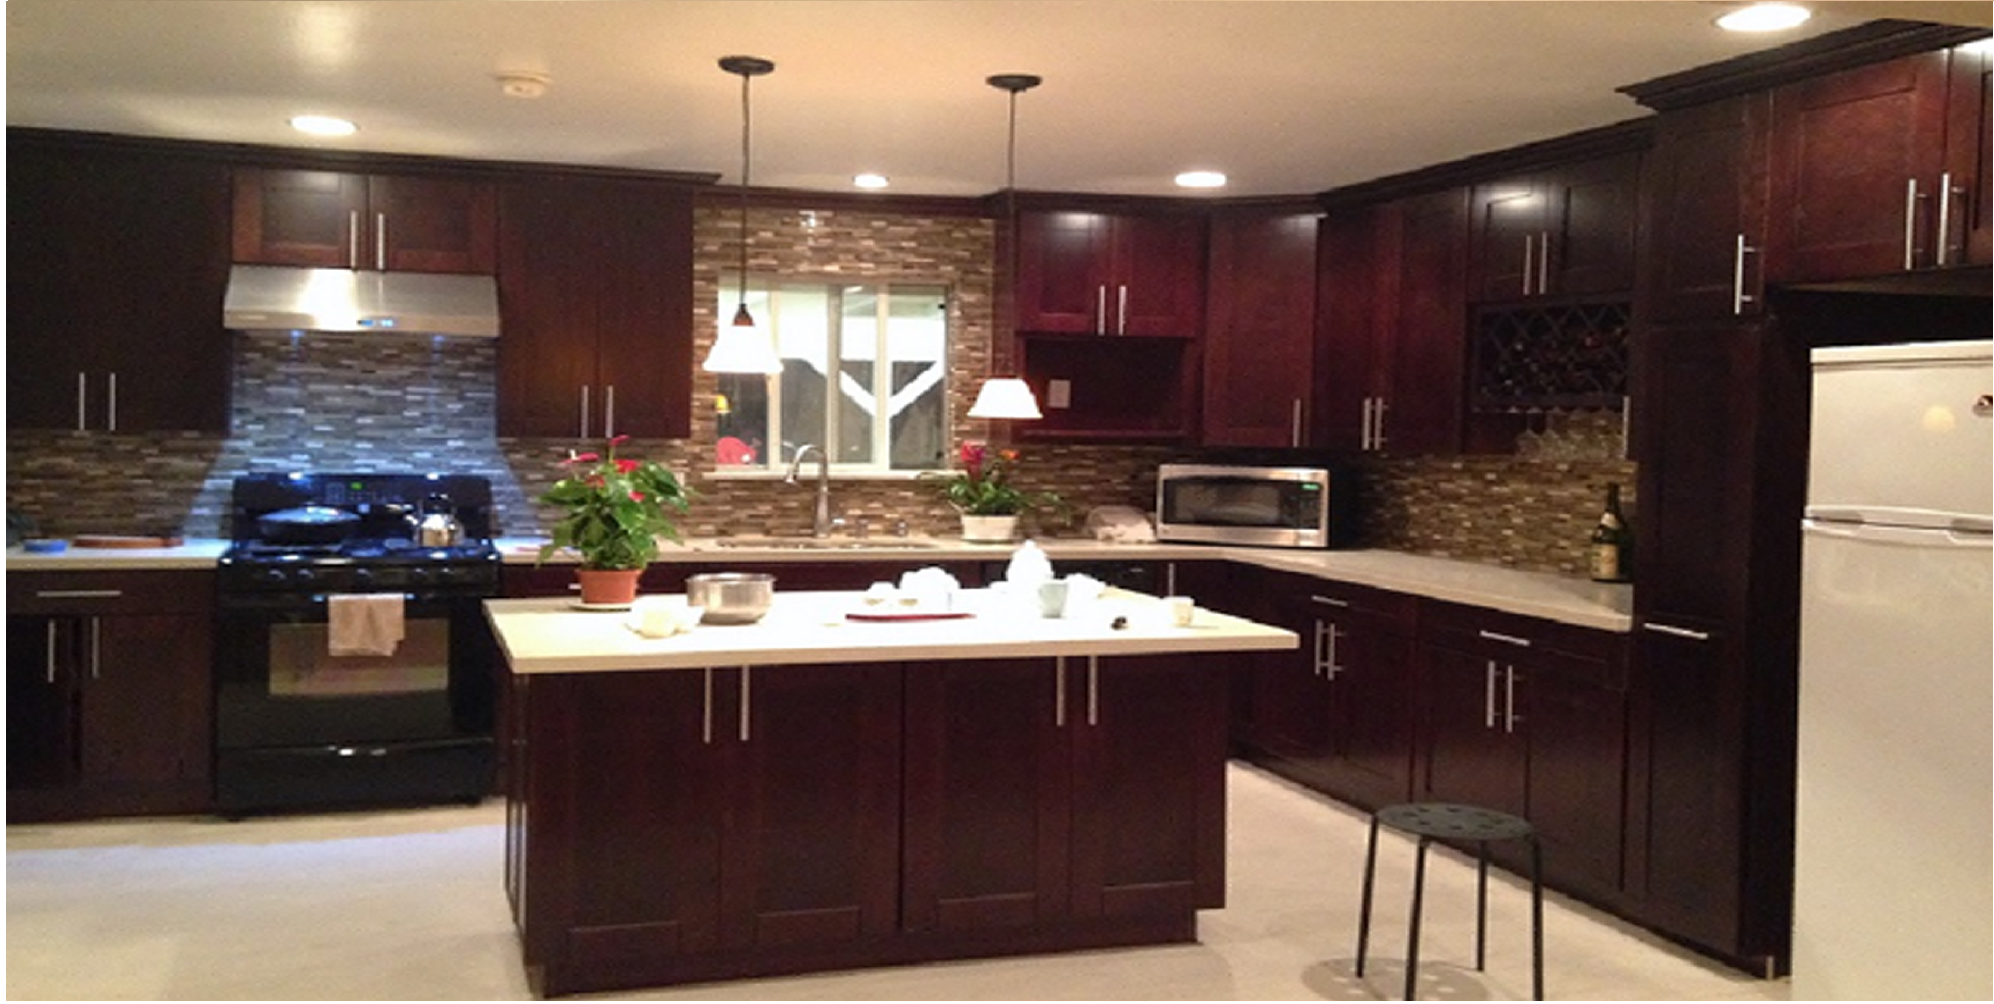 High Quality Cabinets Amp Granite Countertops Lincoln Ne